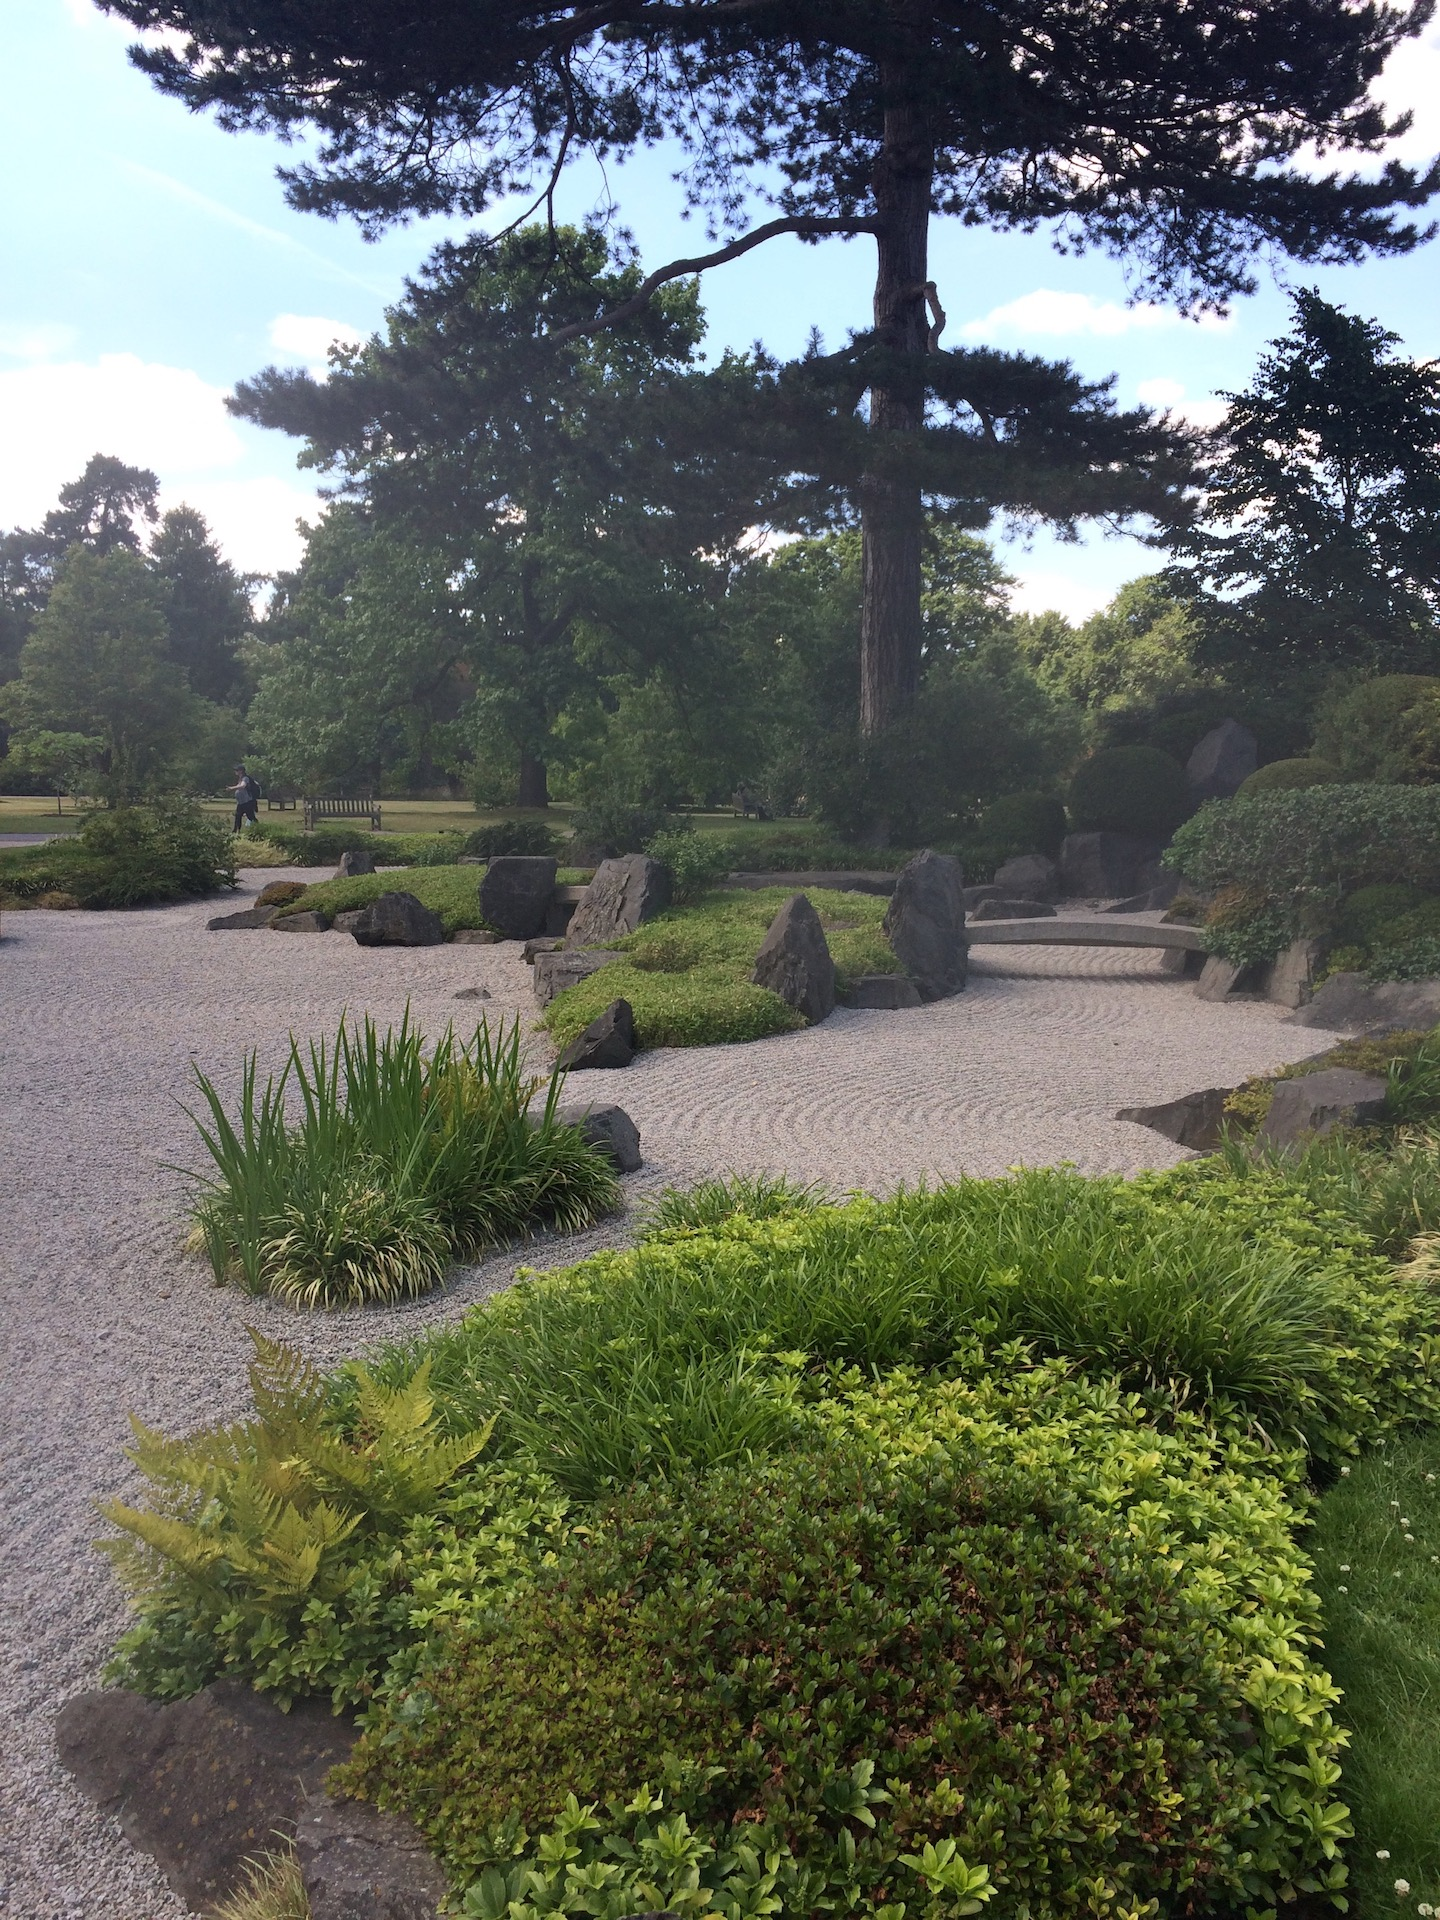 The 17 tonnes of aggregate or Zen gravel is raked weekly to maintain its patterns. Japanese gardens usually use a light colour of granite aggregate.